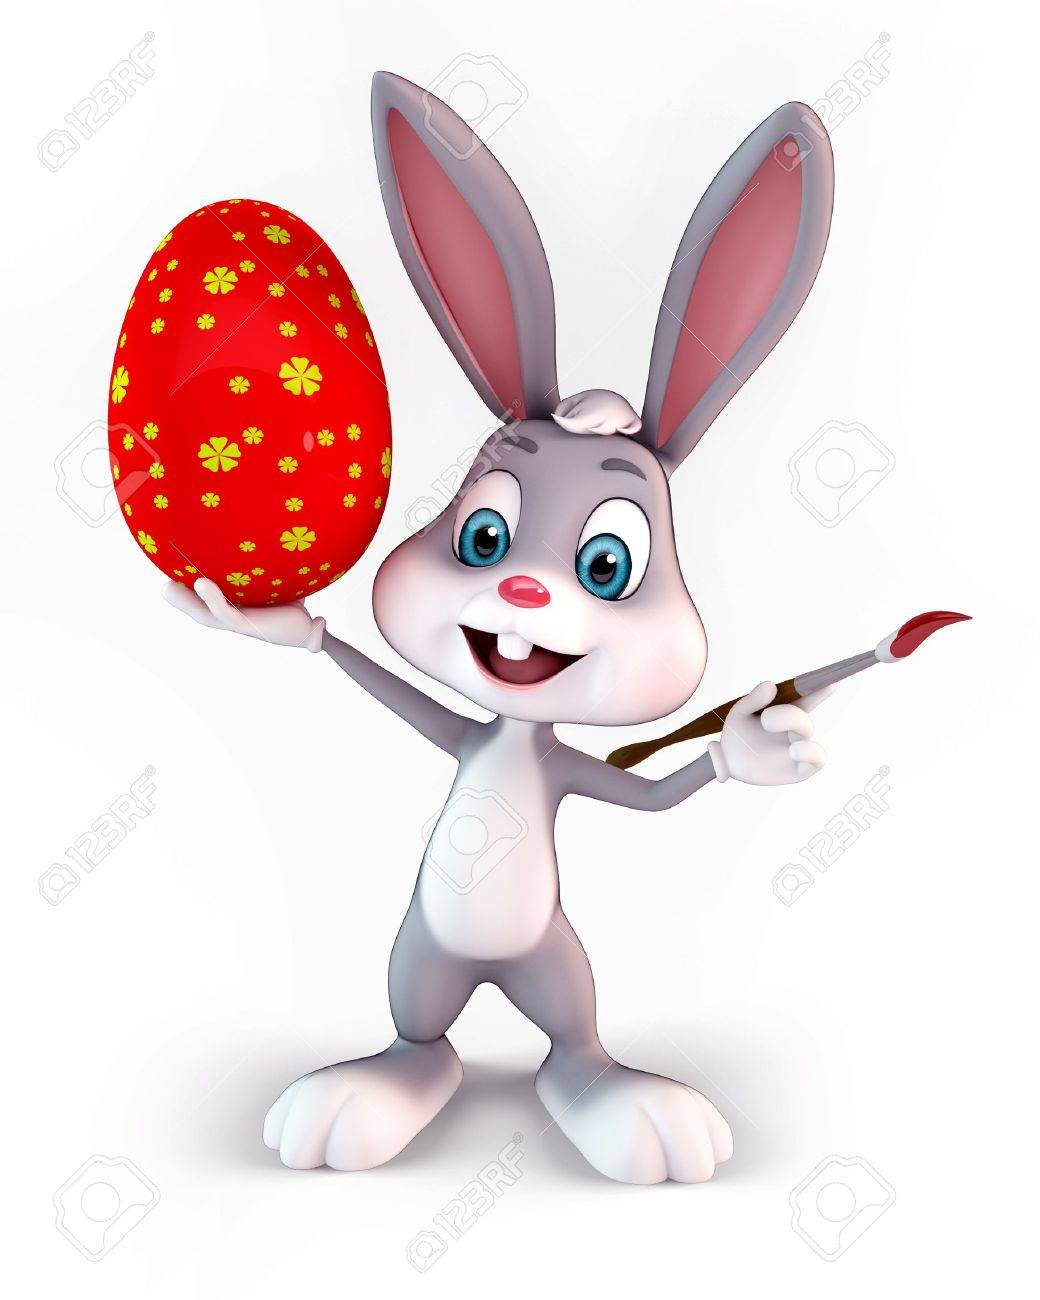 cute easter bunny carrying a colorful egg Stock Photo - 13577260